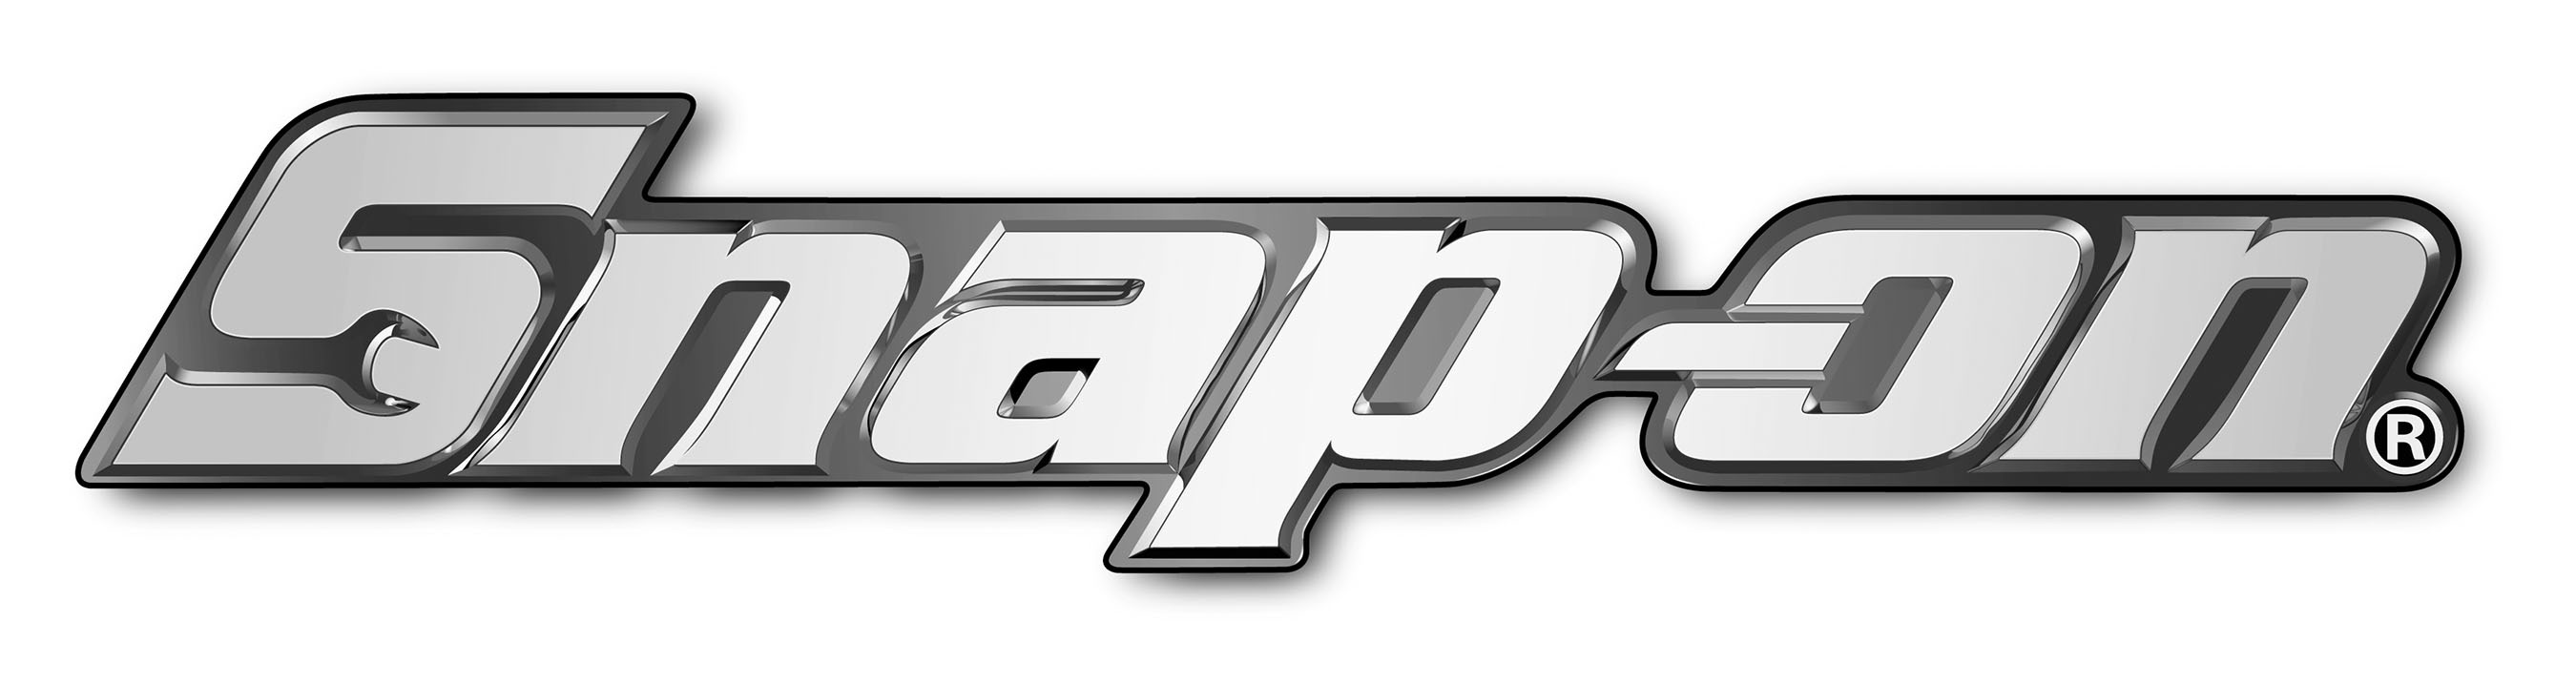 Snap-on logo